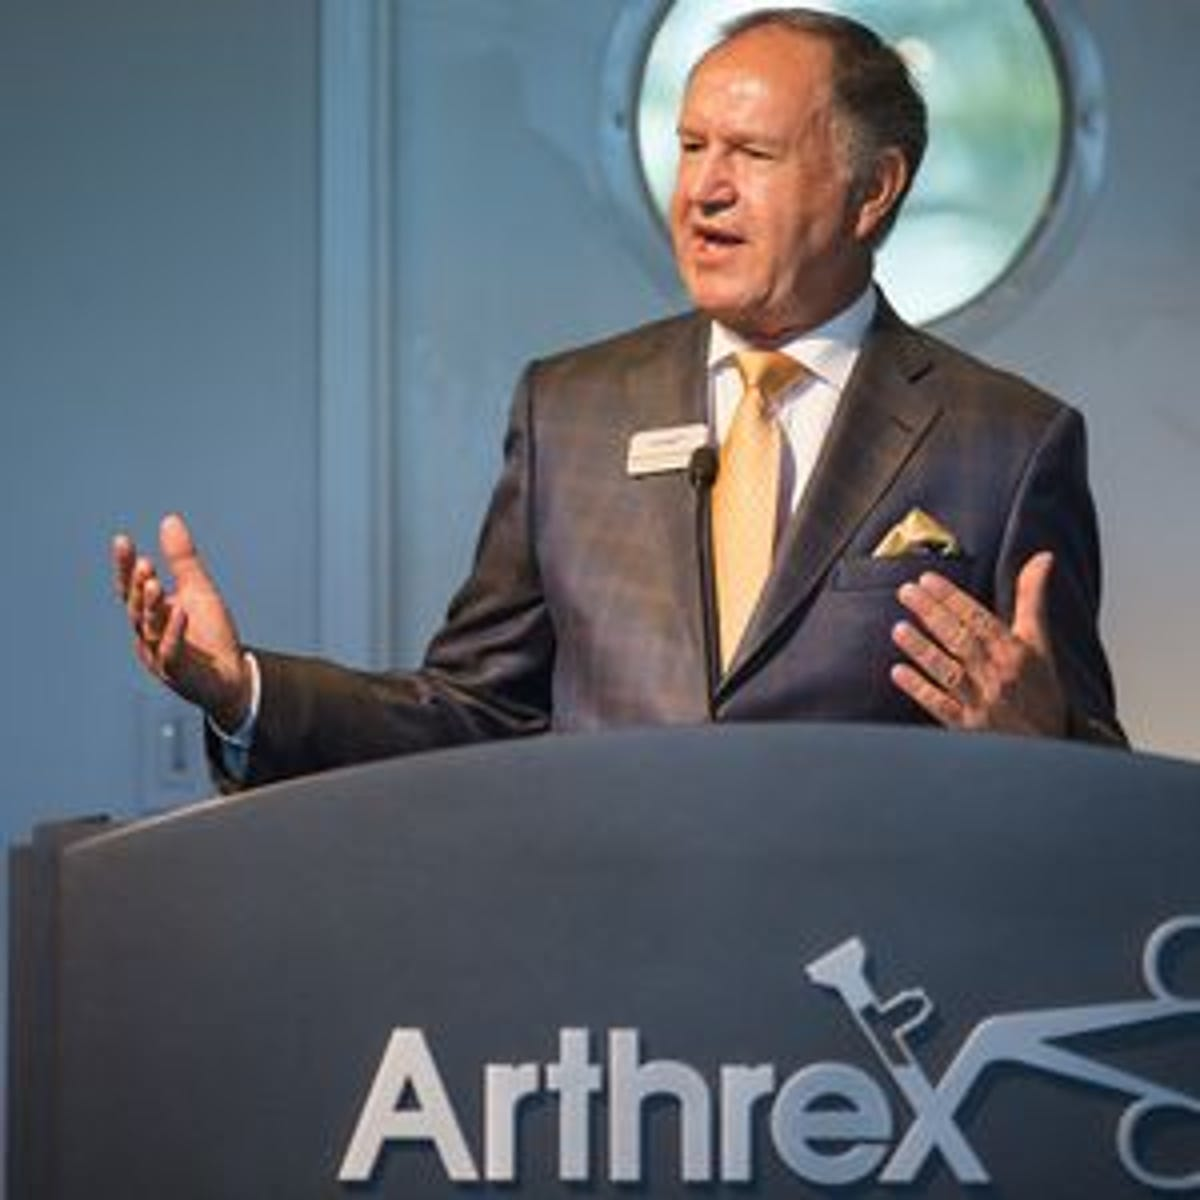 Naples-based Arthrex among firms opposing medical device tax